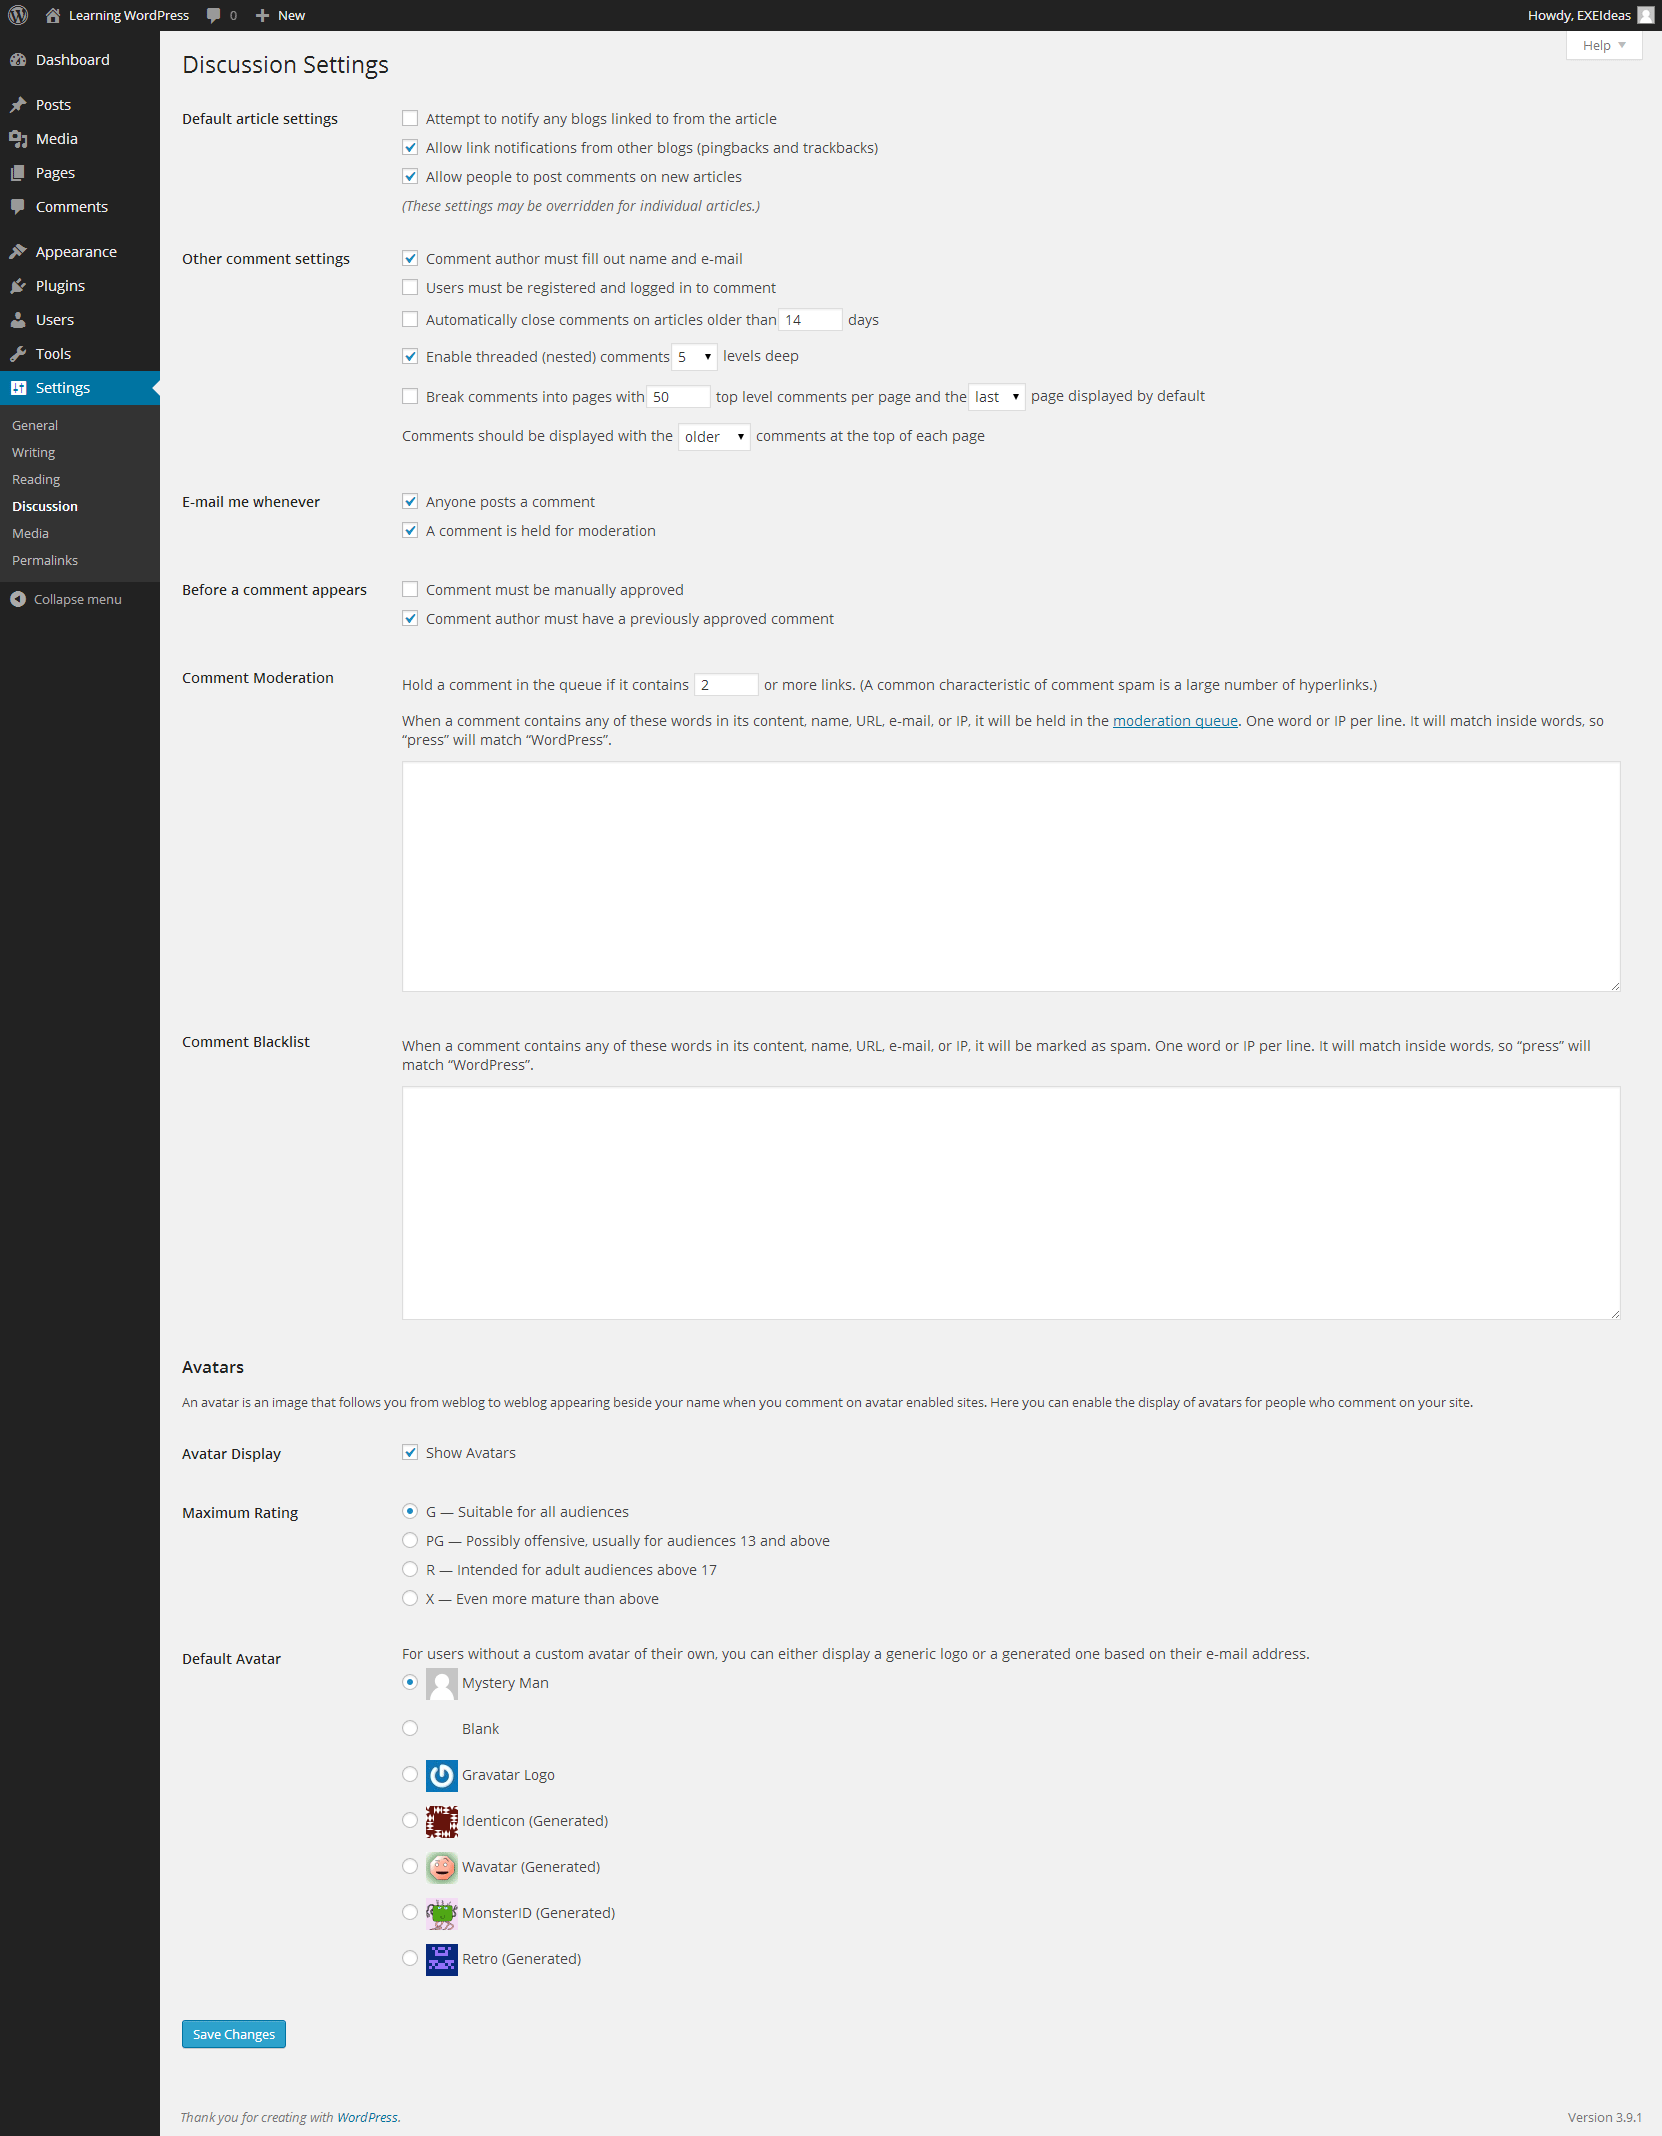 WordPress-Recommended-Discussion-Settings